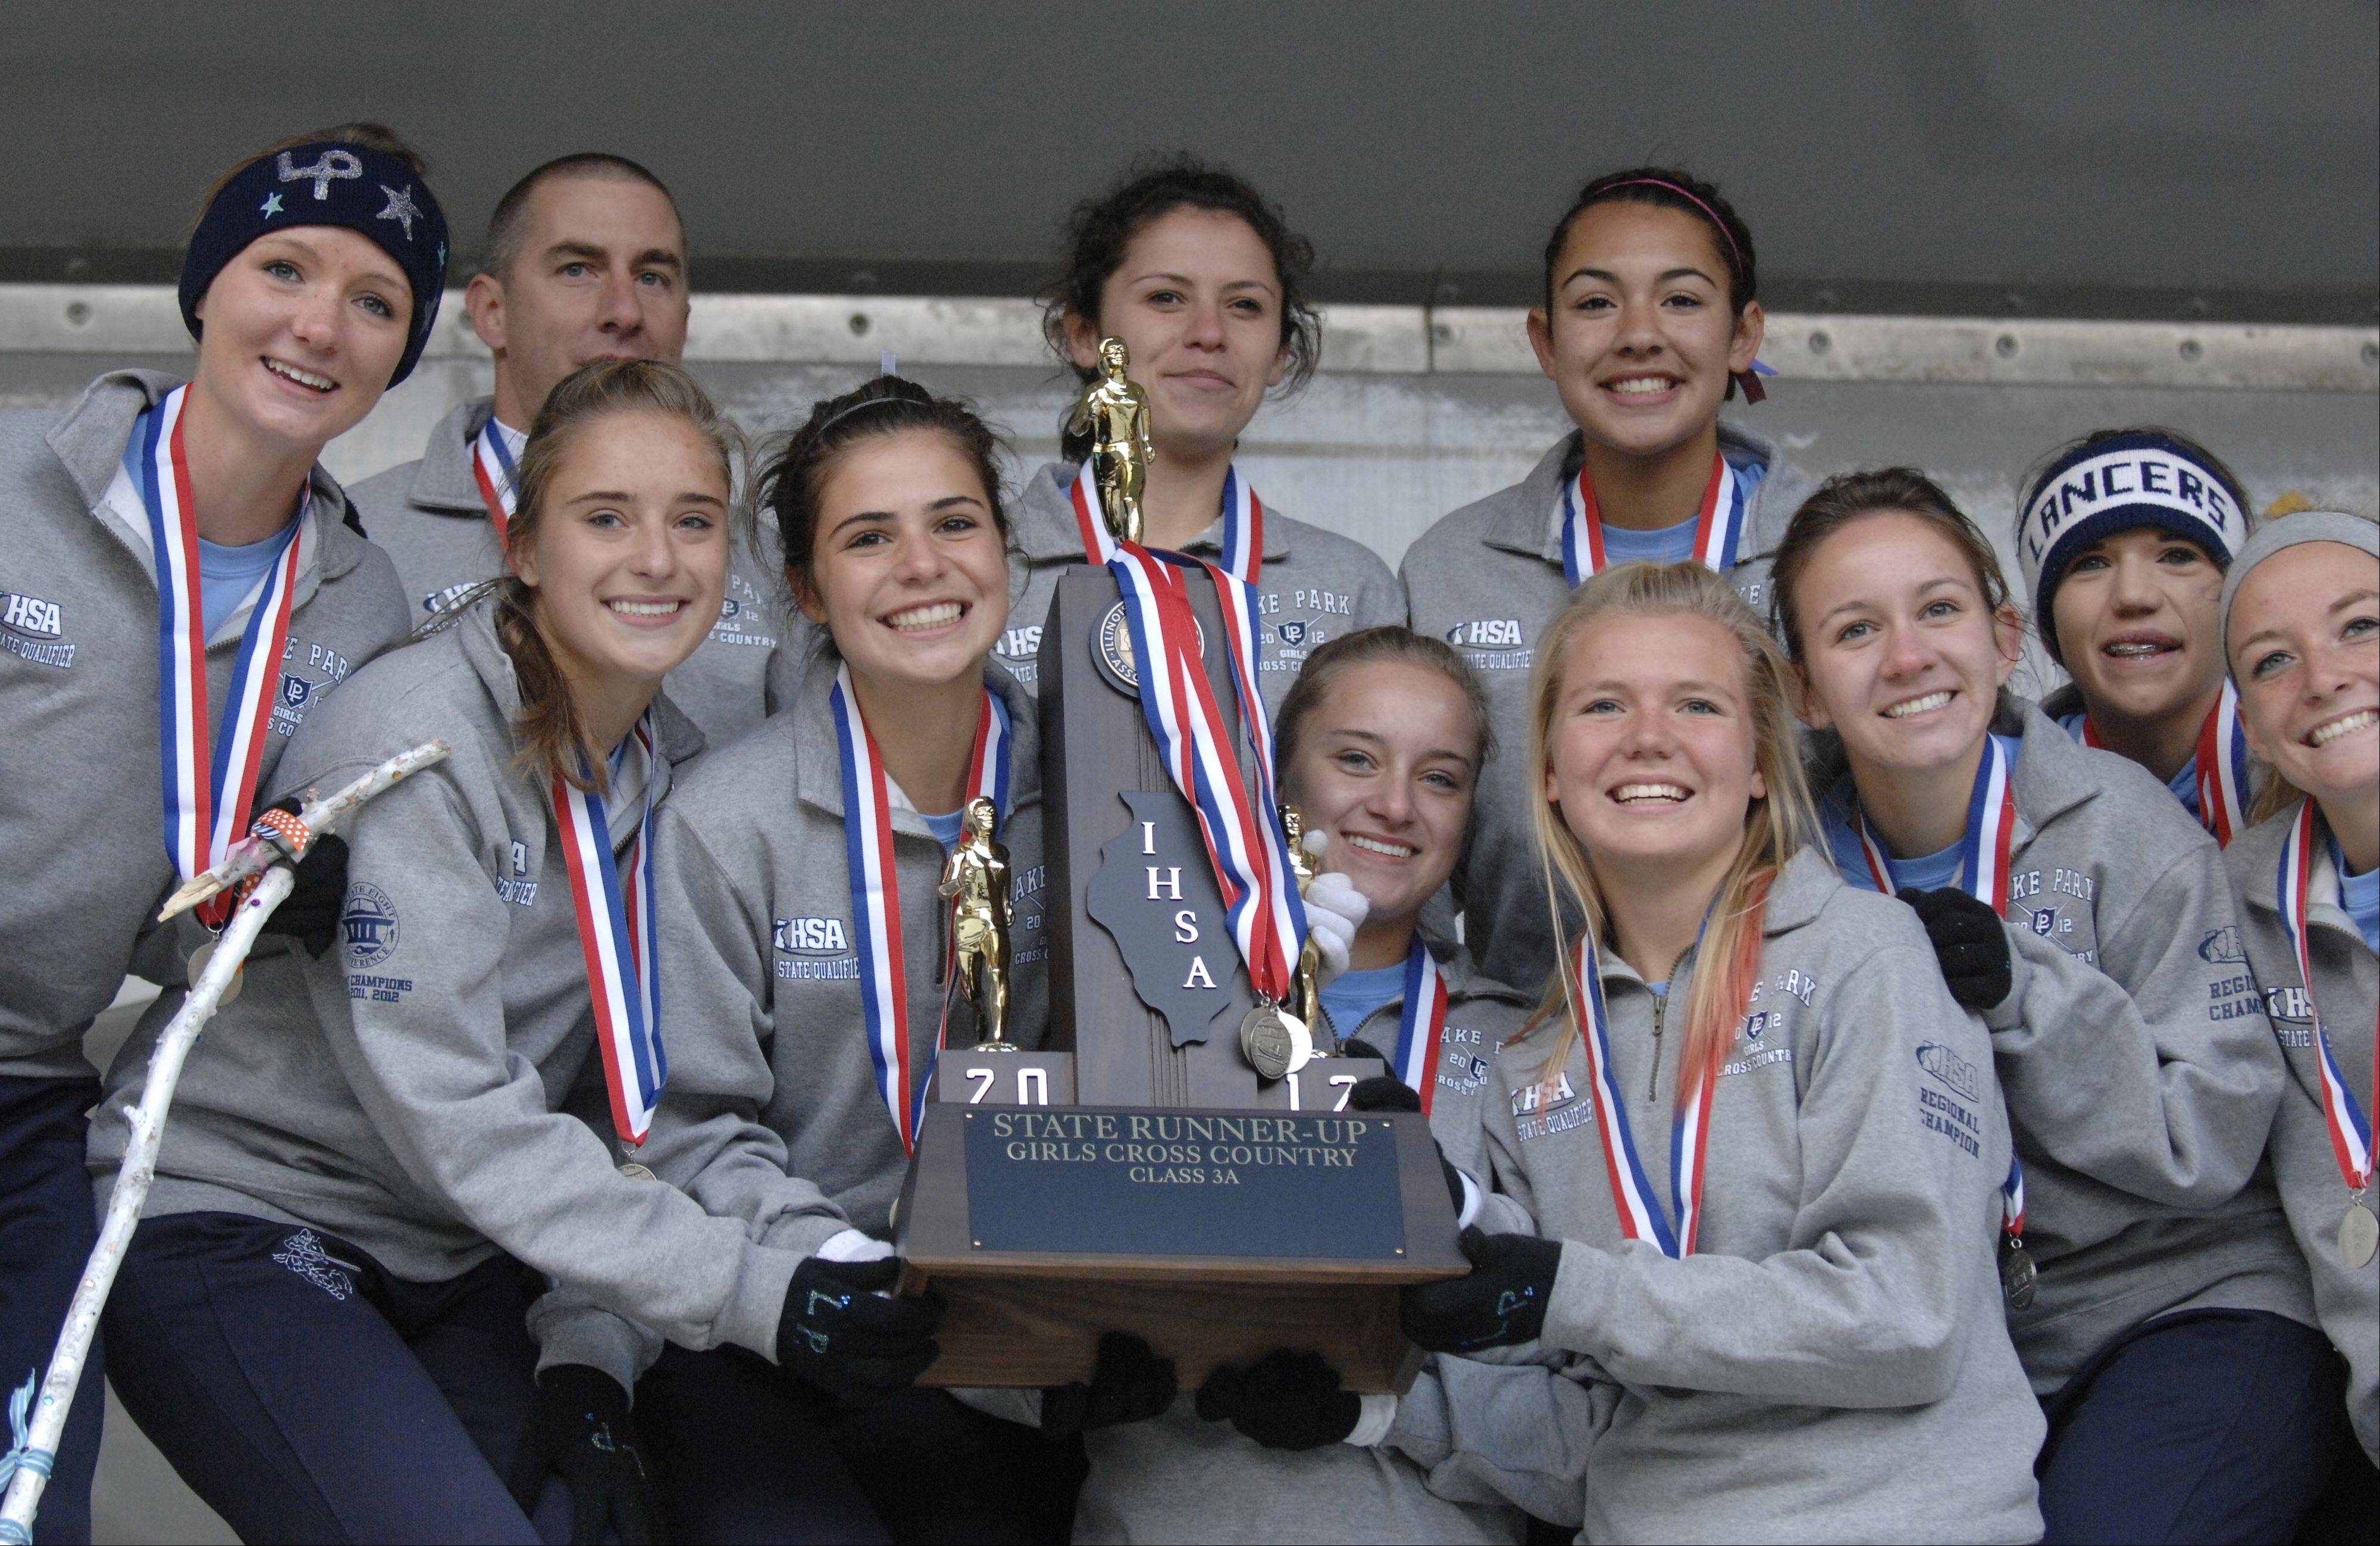 Lake Park poses with their 3A second place trophy for fans during the awards ceremony at the cross country state finals in Peoria on Saturday, November 3.